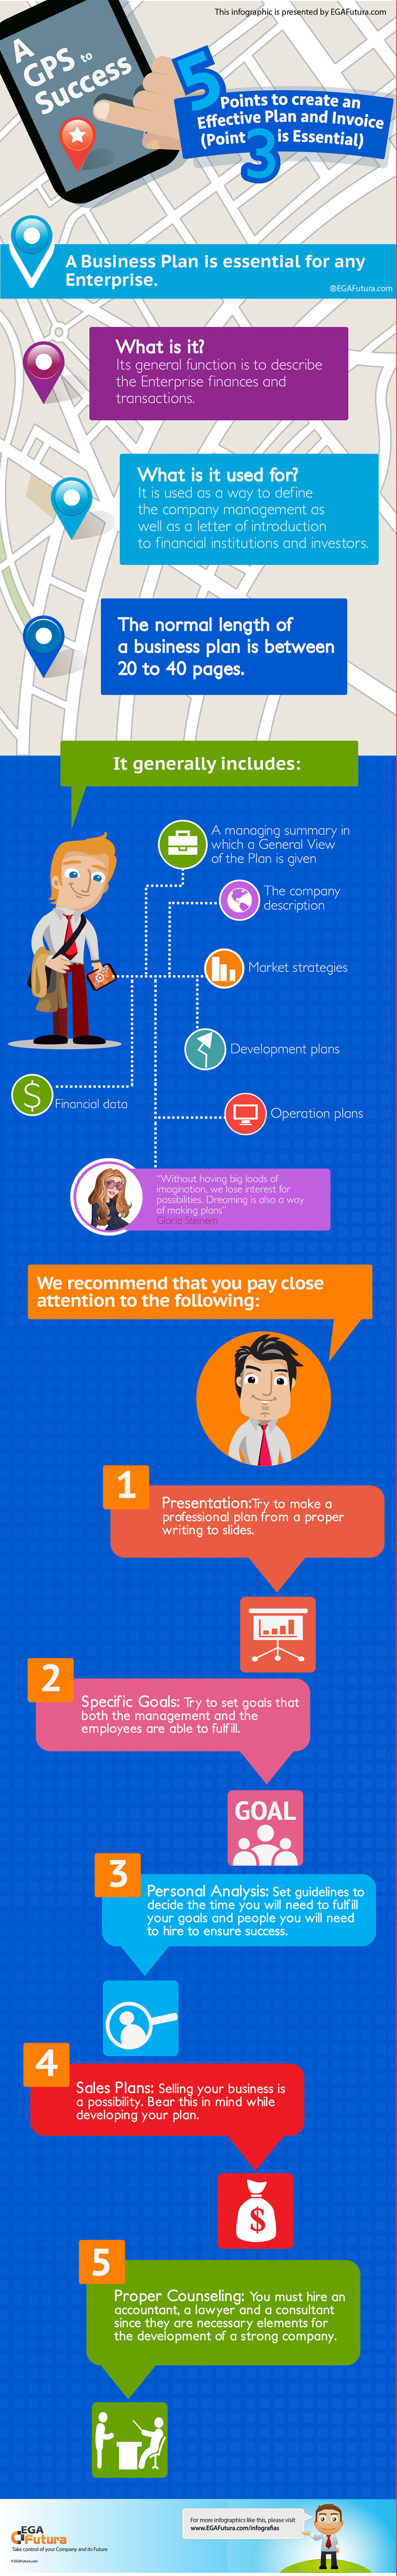 Infographic: A GPS to Success: 5 Points to create an Effective Plan and Invoice (Point 3 is Essential)